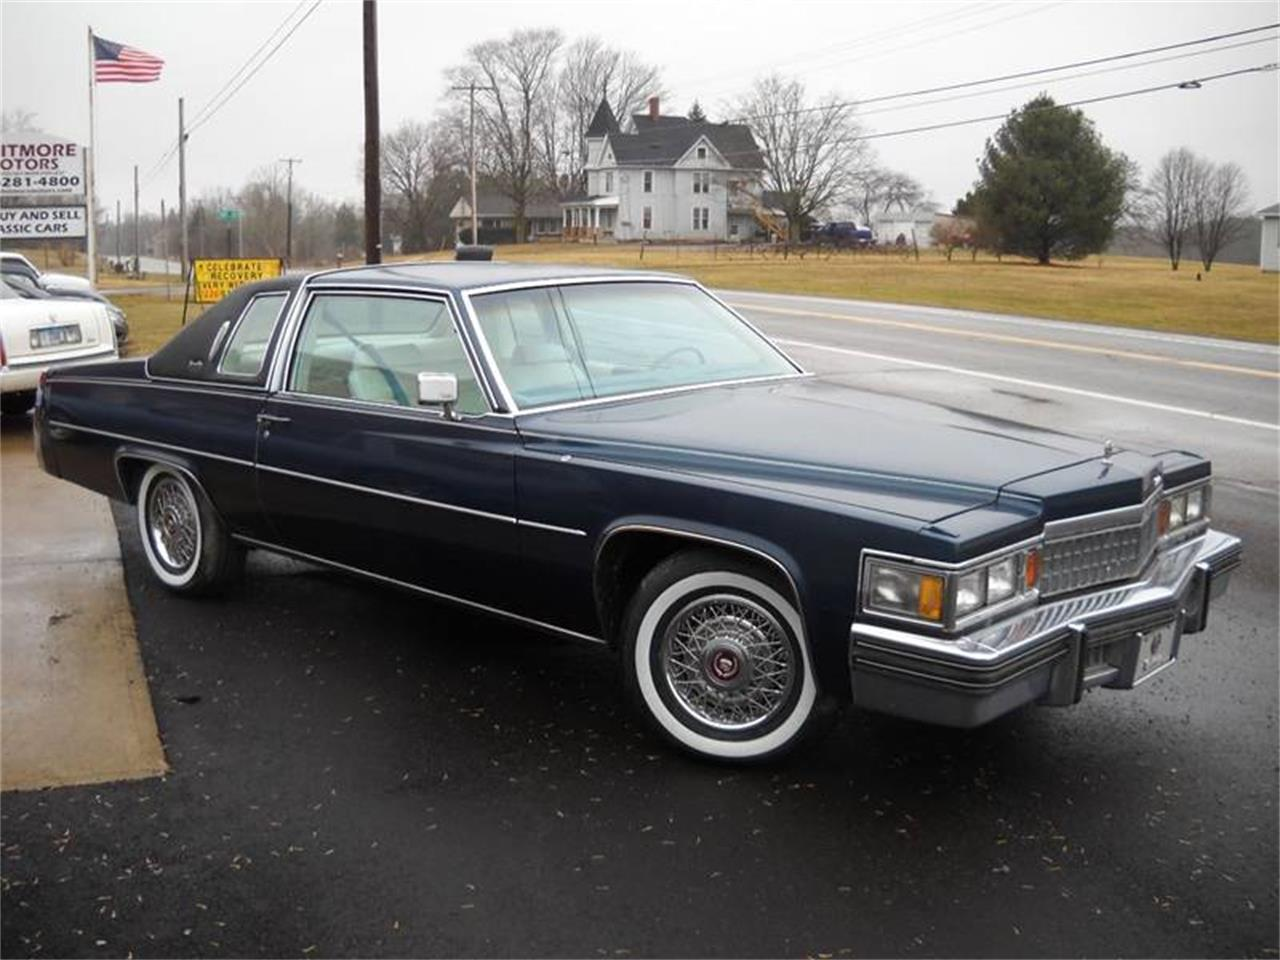 Large Picture of '78 DeVille - $8,550.00 Offered by Whitmore Motors - N54I